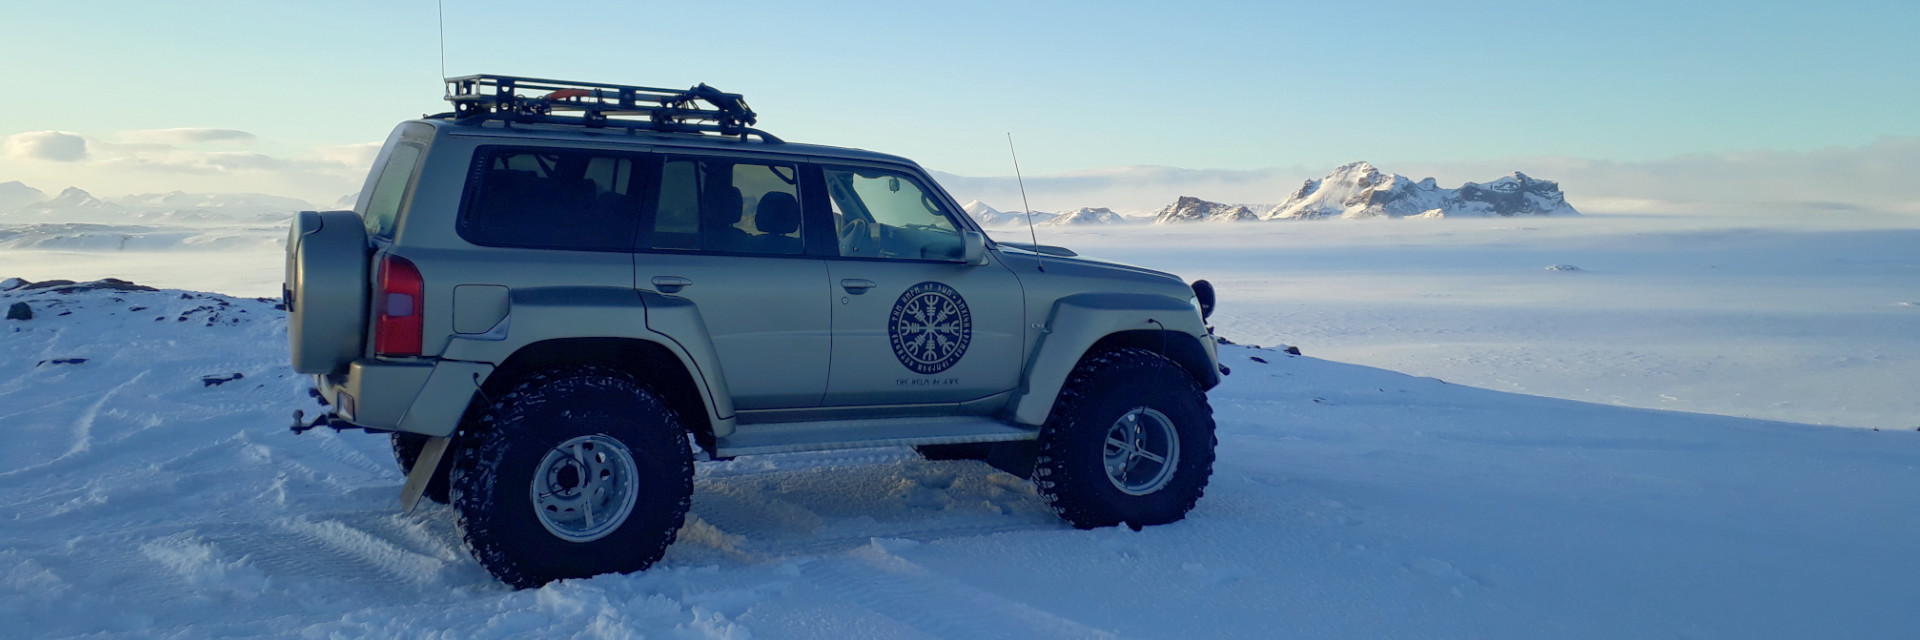 Nissan Patrol - Super Jeep at Langjökull Glacier